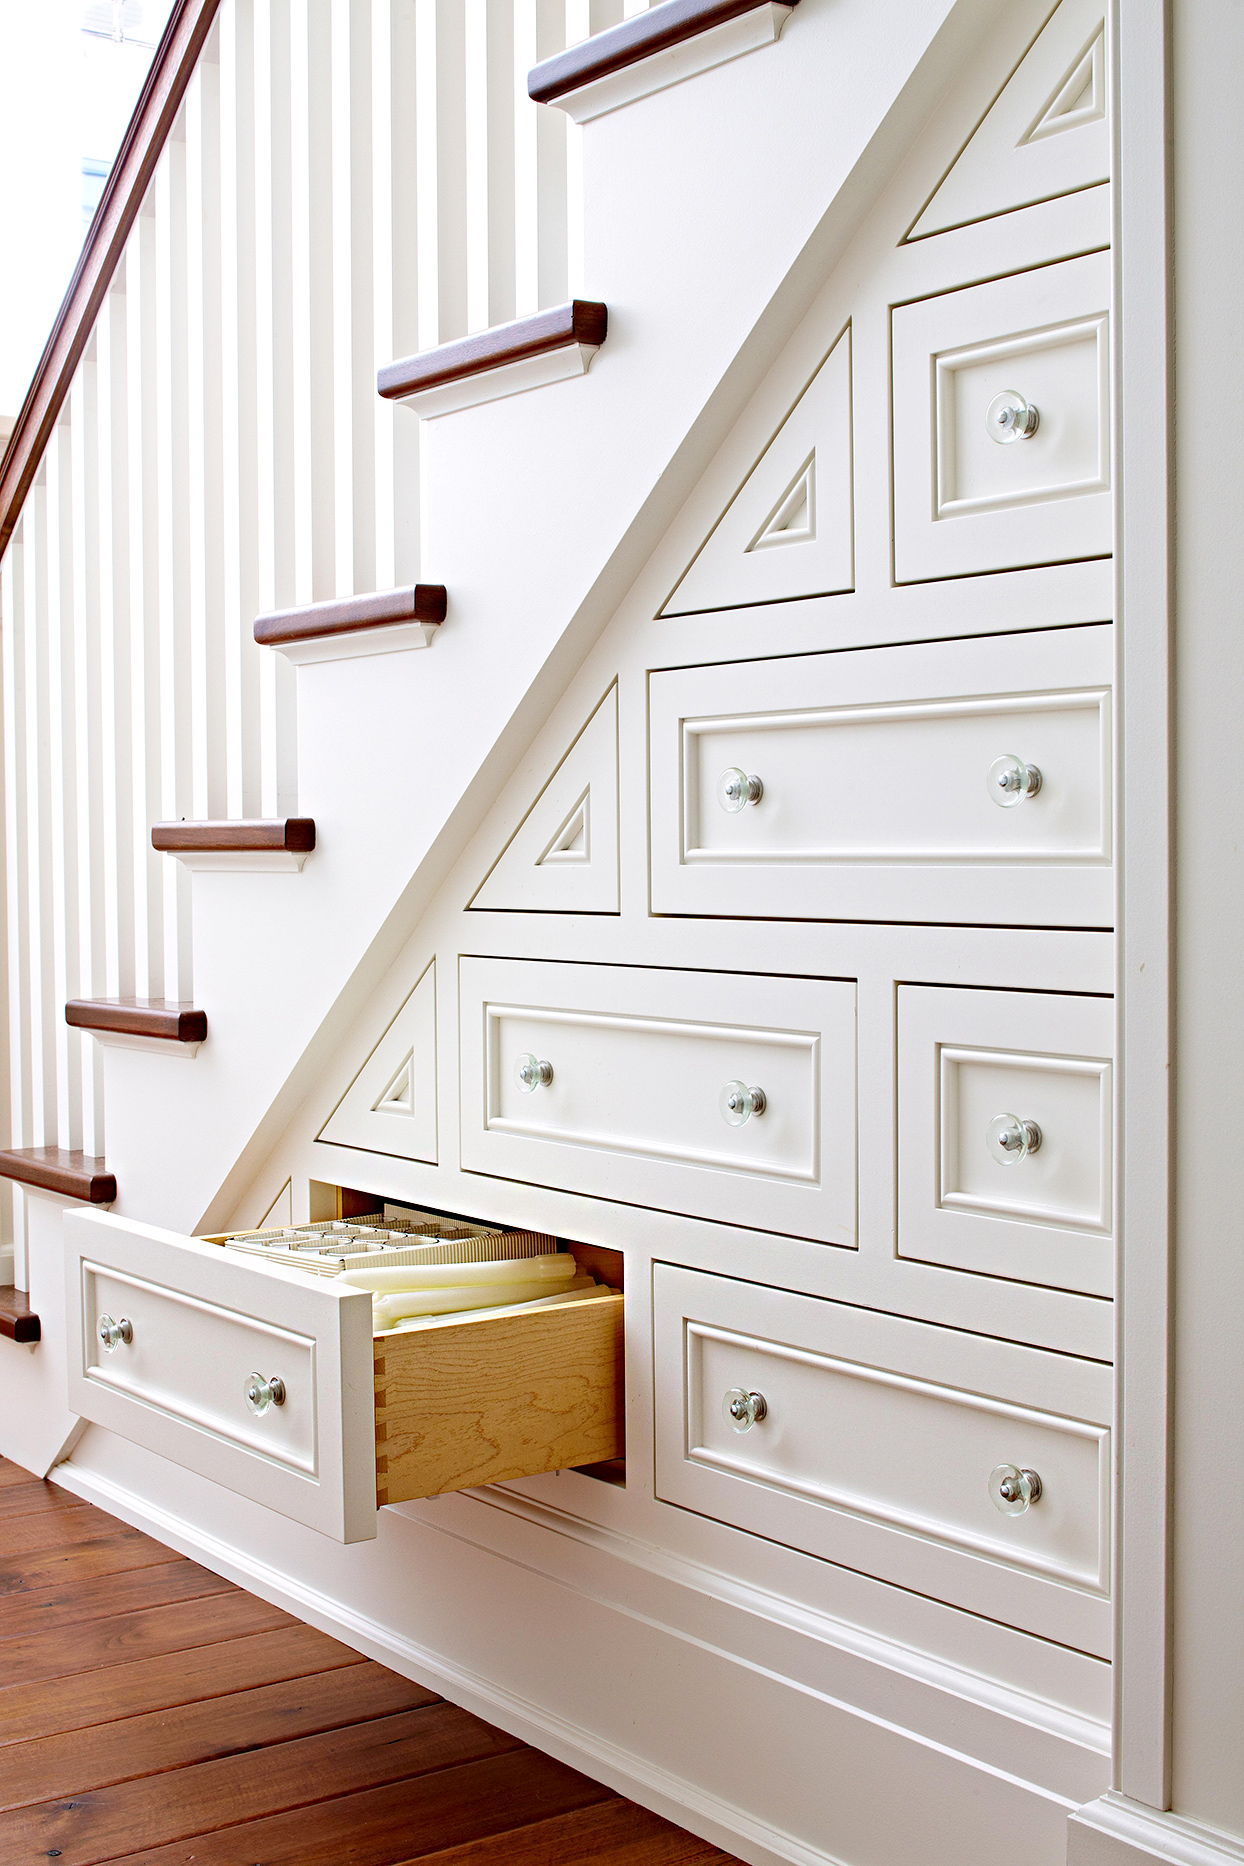 Drawers on stairwell